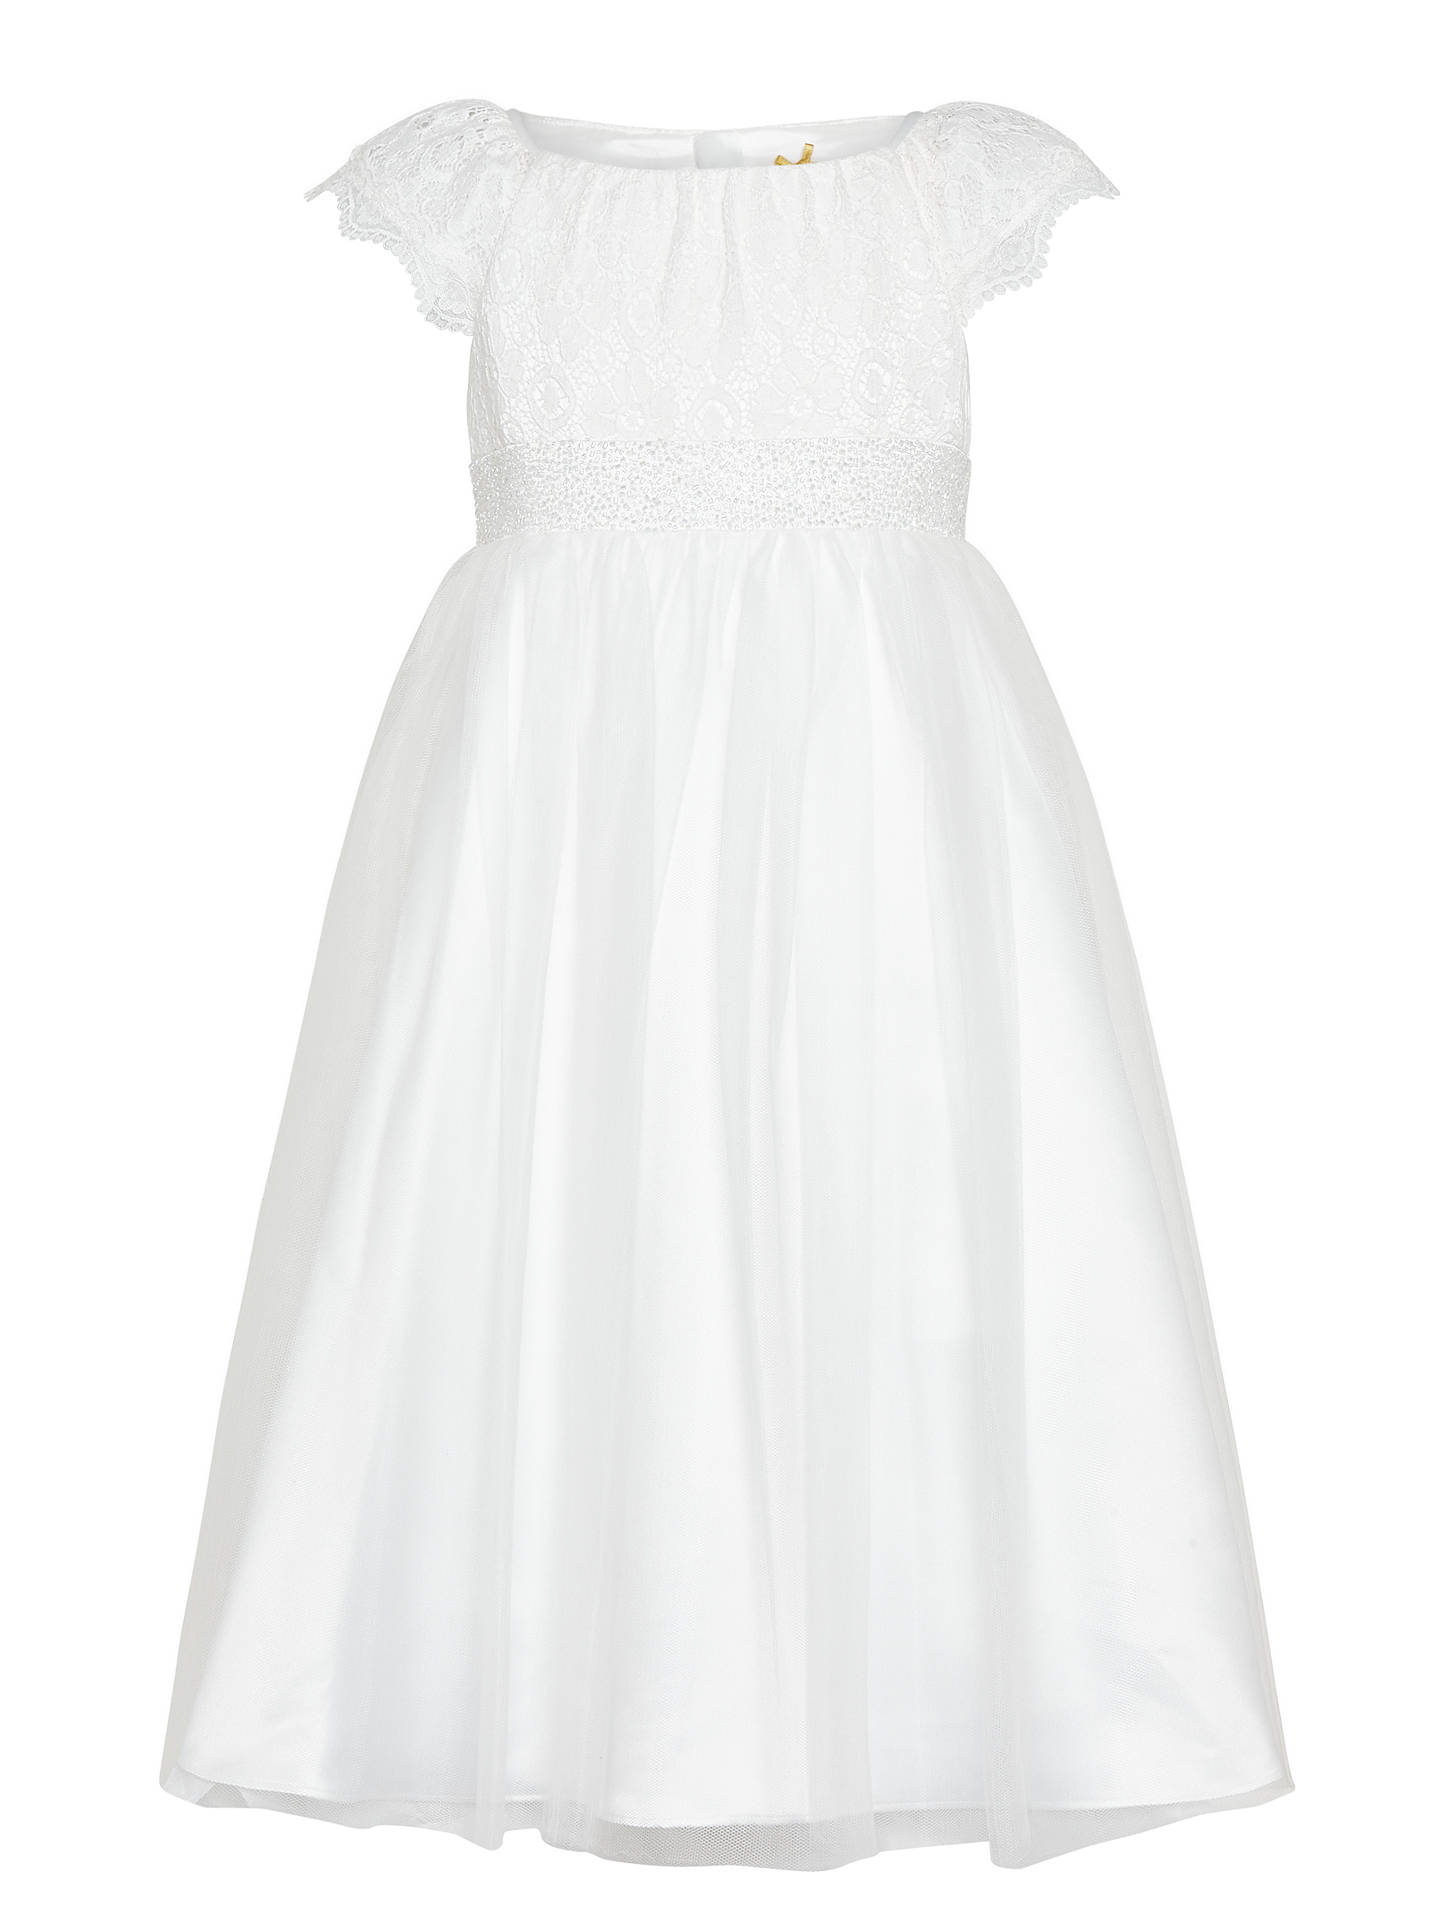 Buy John Lewis & Partners Girls' Lace Mesh Bridesmaid Dress, Ivory, 2 years Online at johnlewis.com